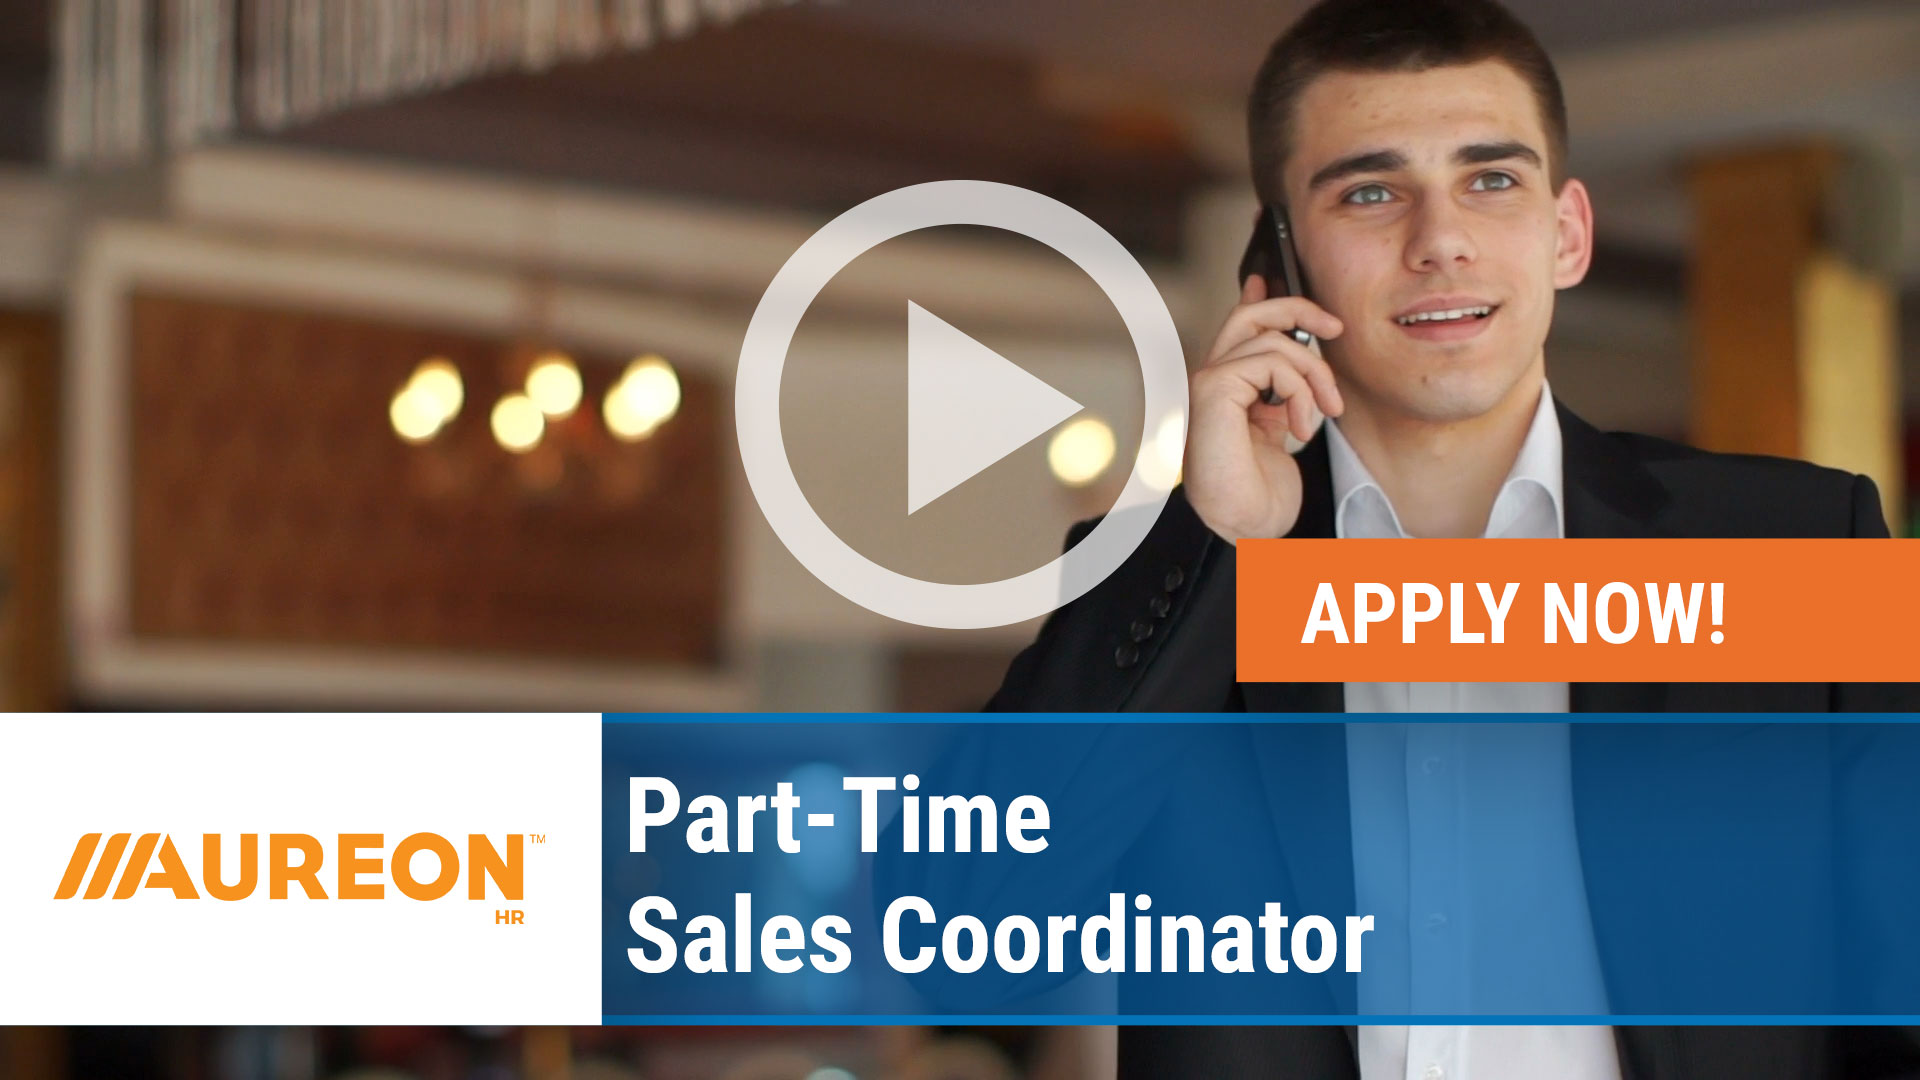 Watch our careers video for available job opening Part-Time Sales Coordinator in Des Moines,  Iowa